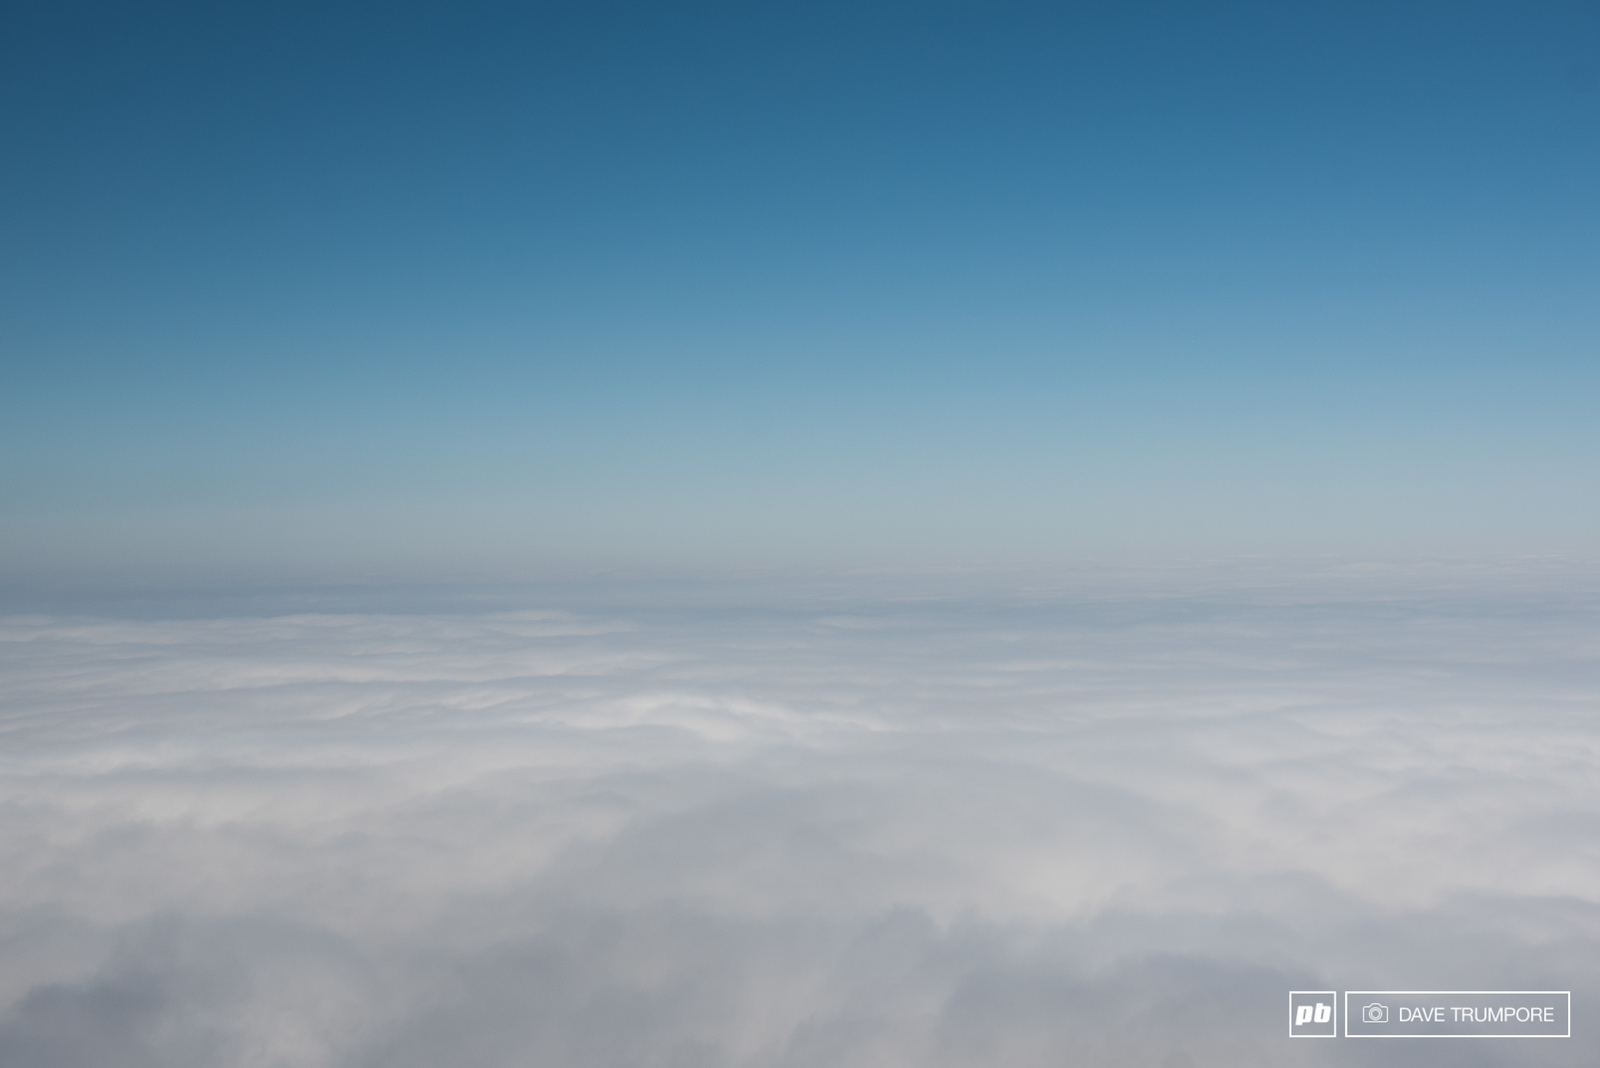 Technically that s a view of the Pacific Ocean though under a sea of clouds from the 700 meter summit of the final stage.